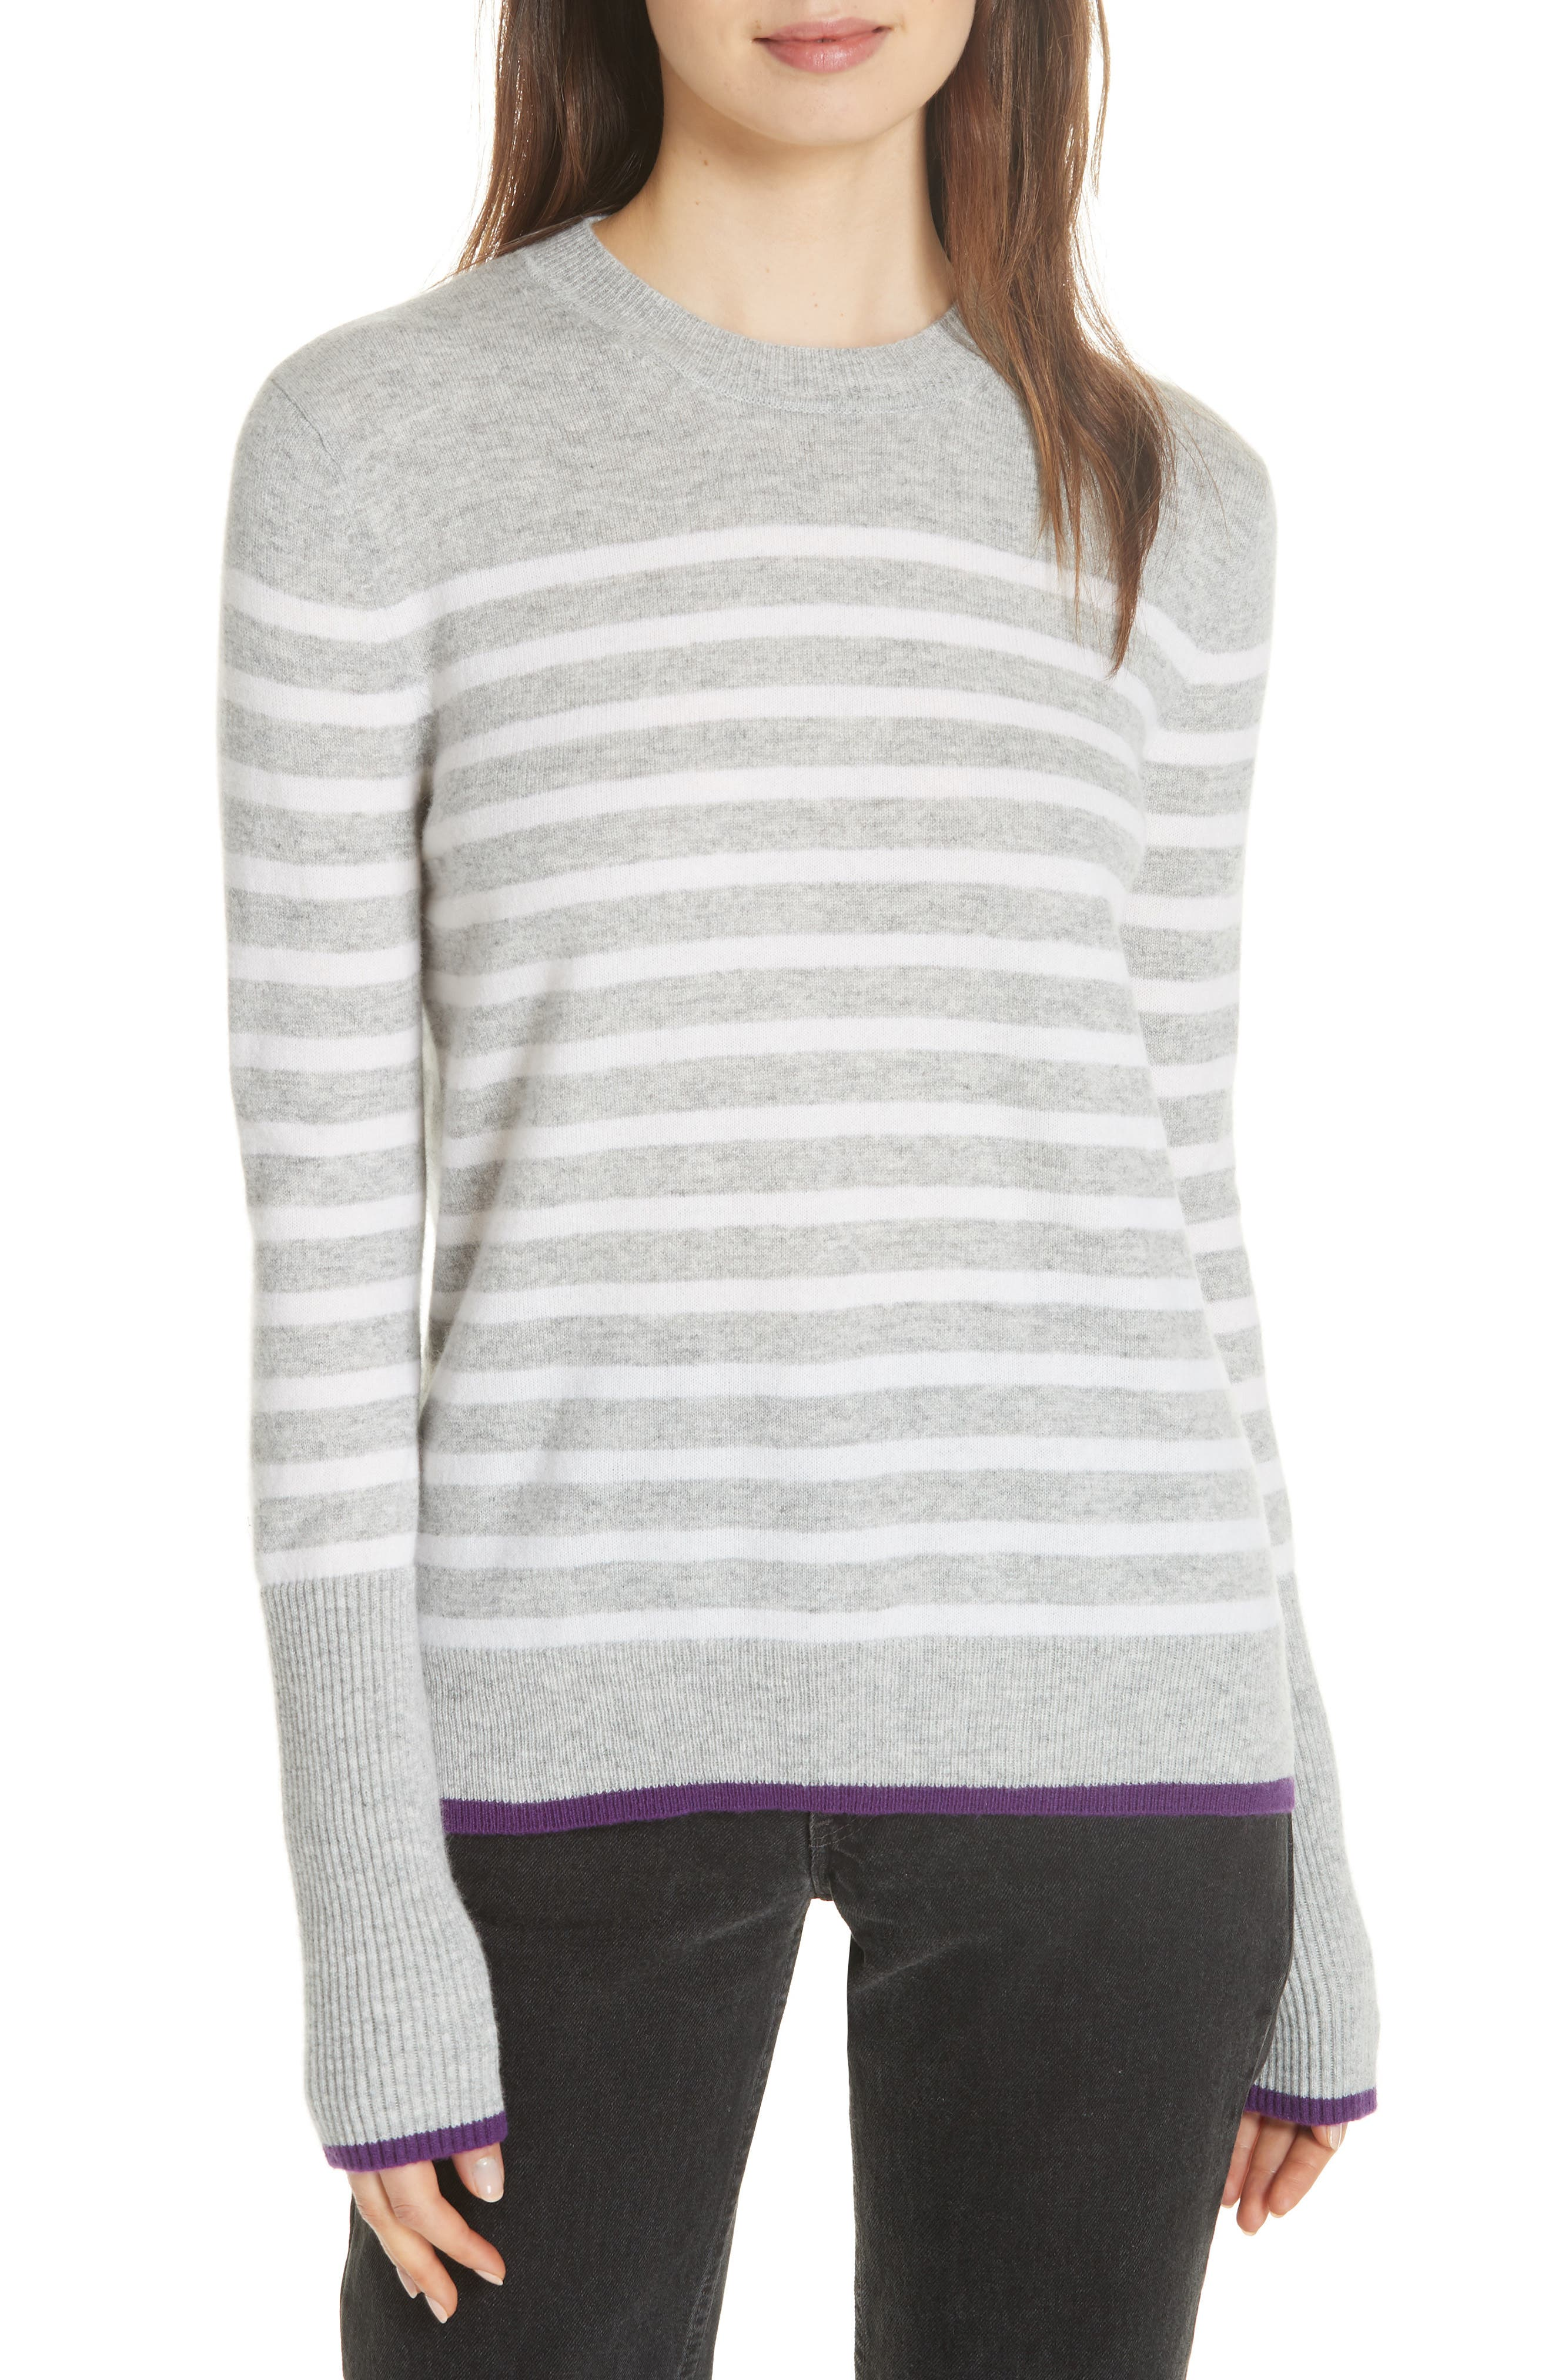 AAA Lean Lines Cashmere Sweater,                         Main,                         color, GREY MARLE/ CREAM/ PURPLE